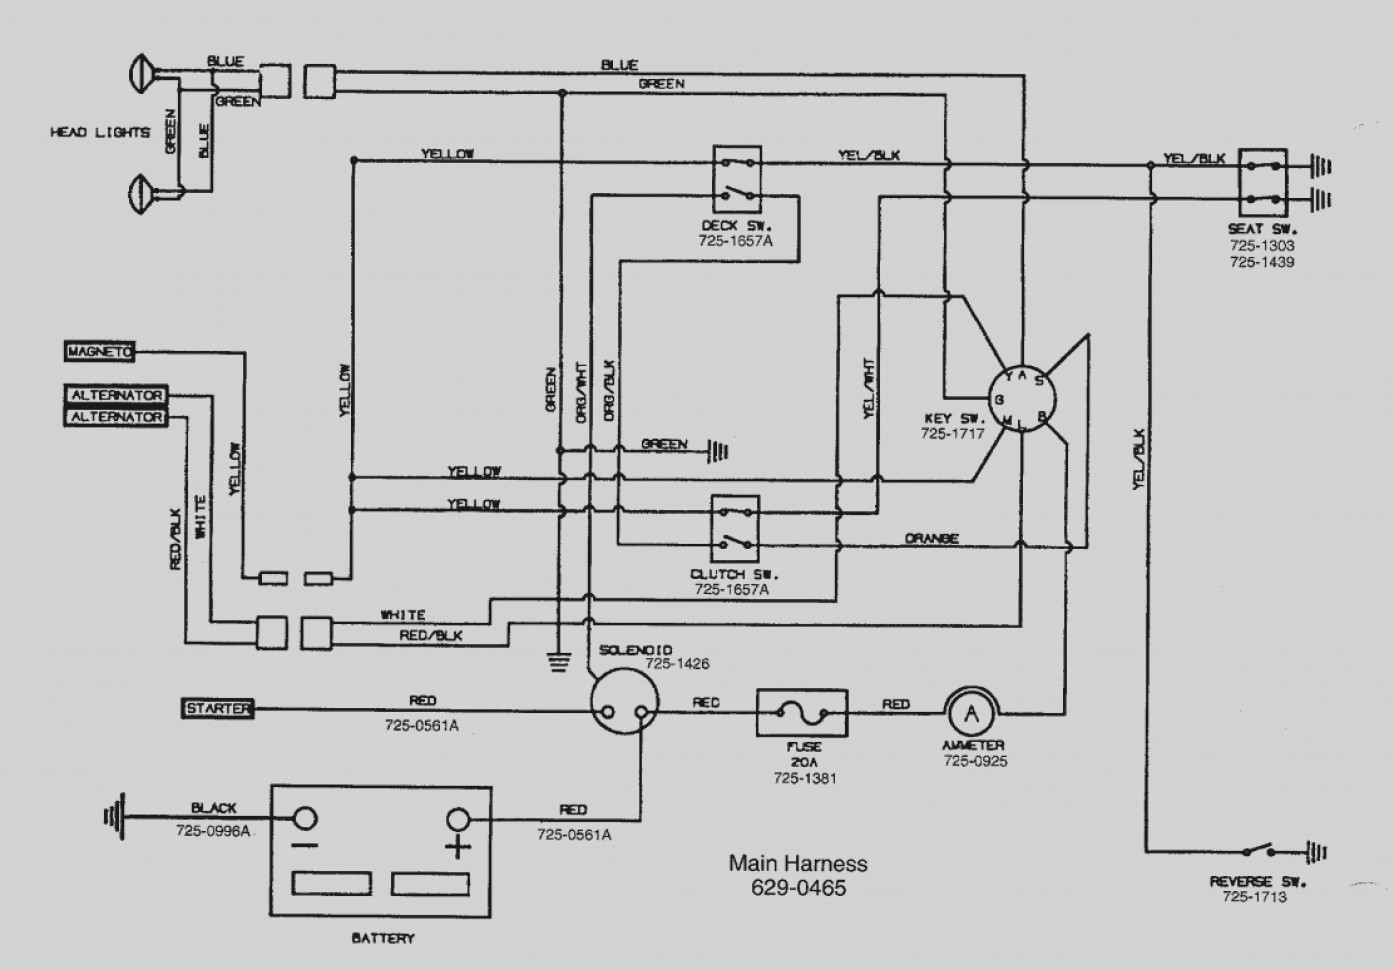 Dixon Mower Wiring Harness Great Installation Of Diagram Lawn Schematics Rh Ksefanzone Com Ztr 30 Zero Turn